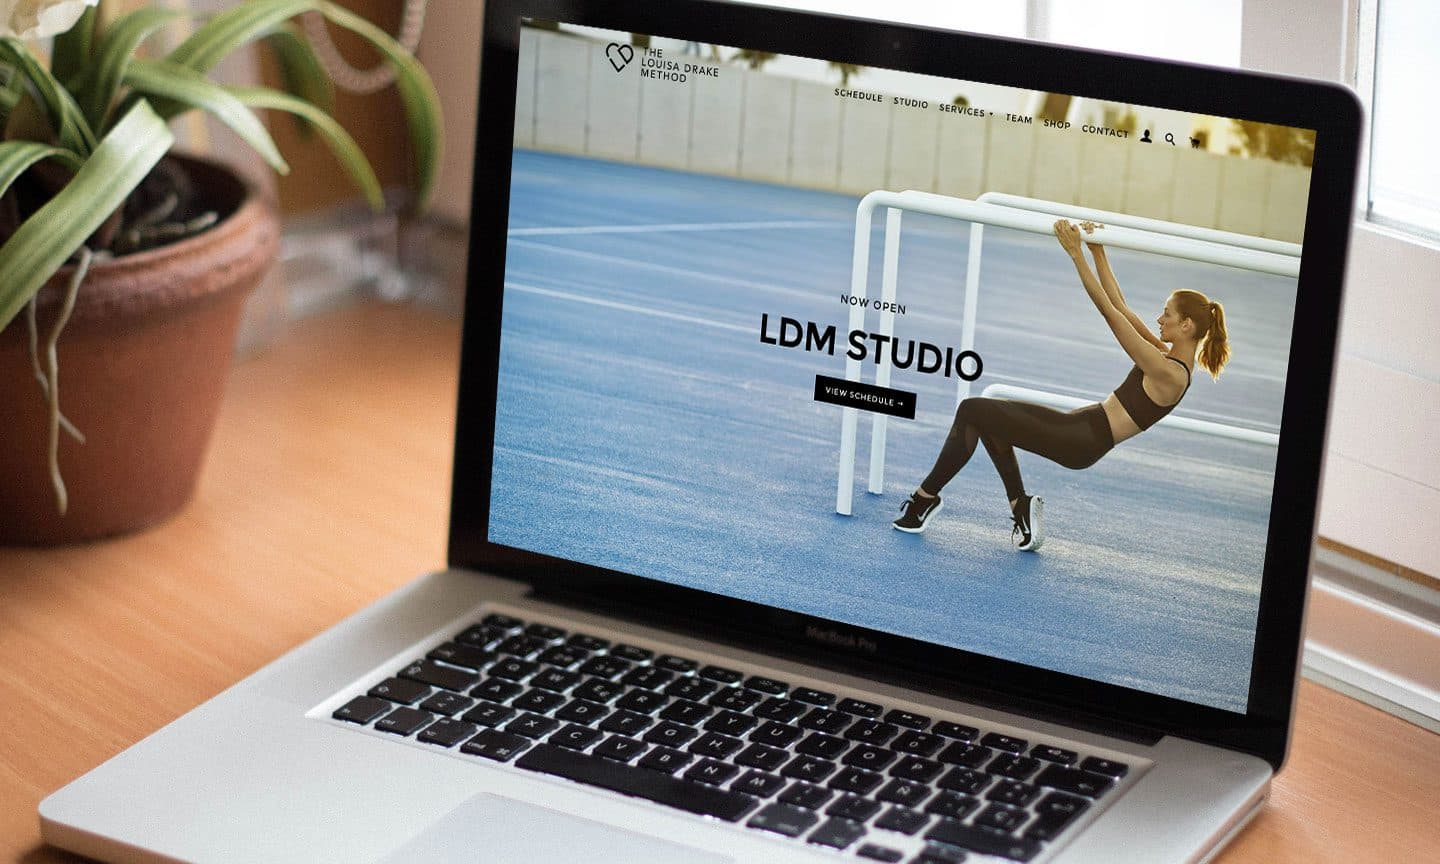 ldm-studio-shopify-website-design-1